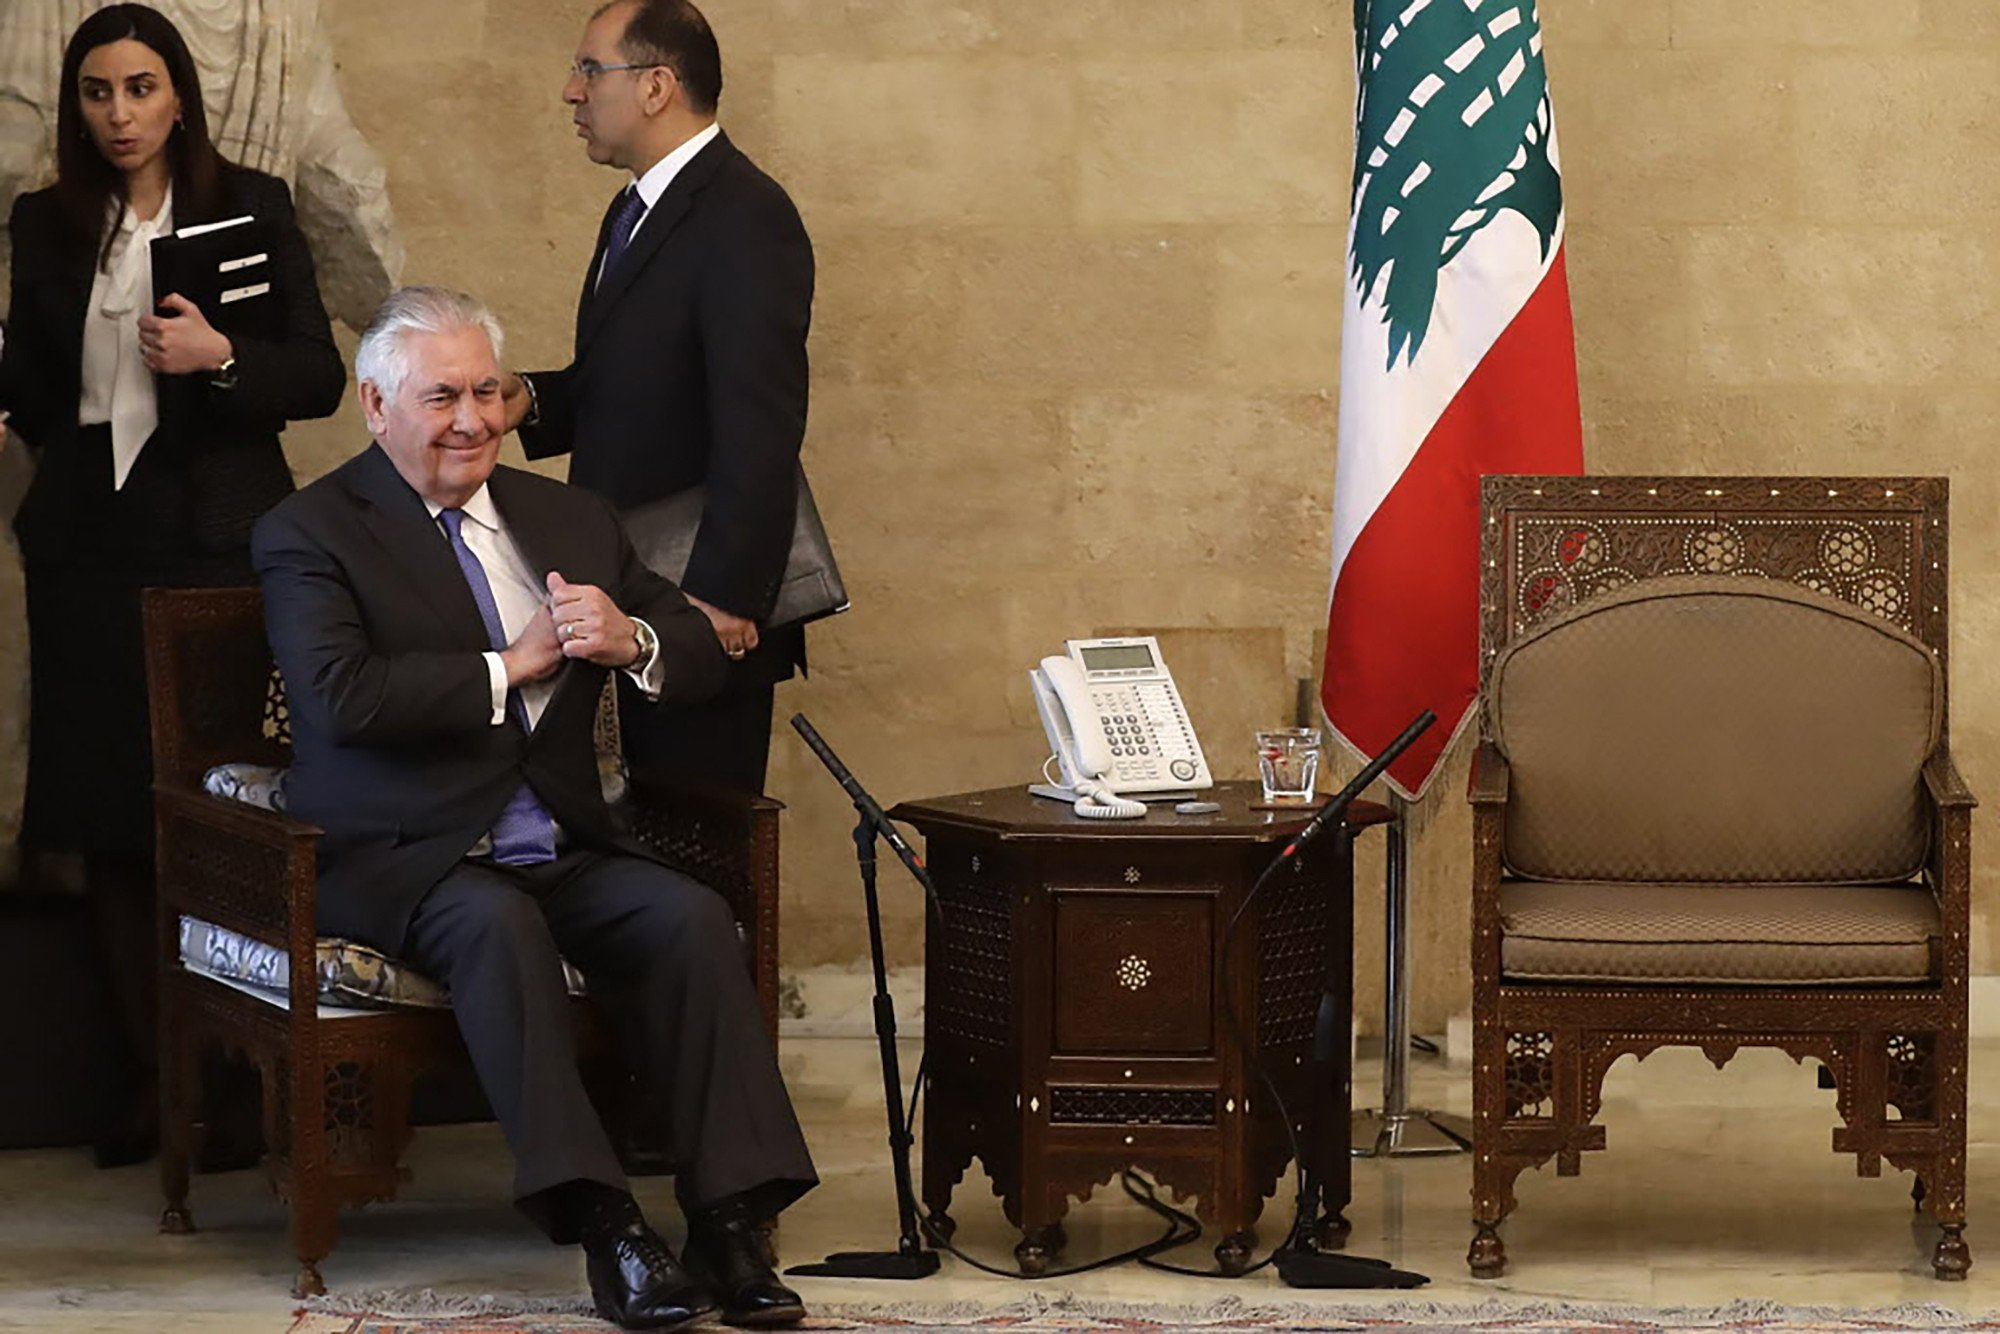 Lebanese officials deny president kept Tillerson waiting